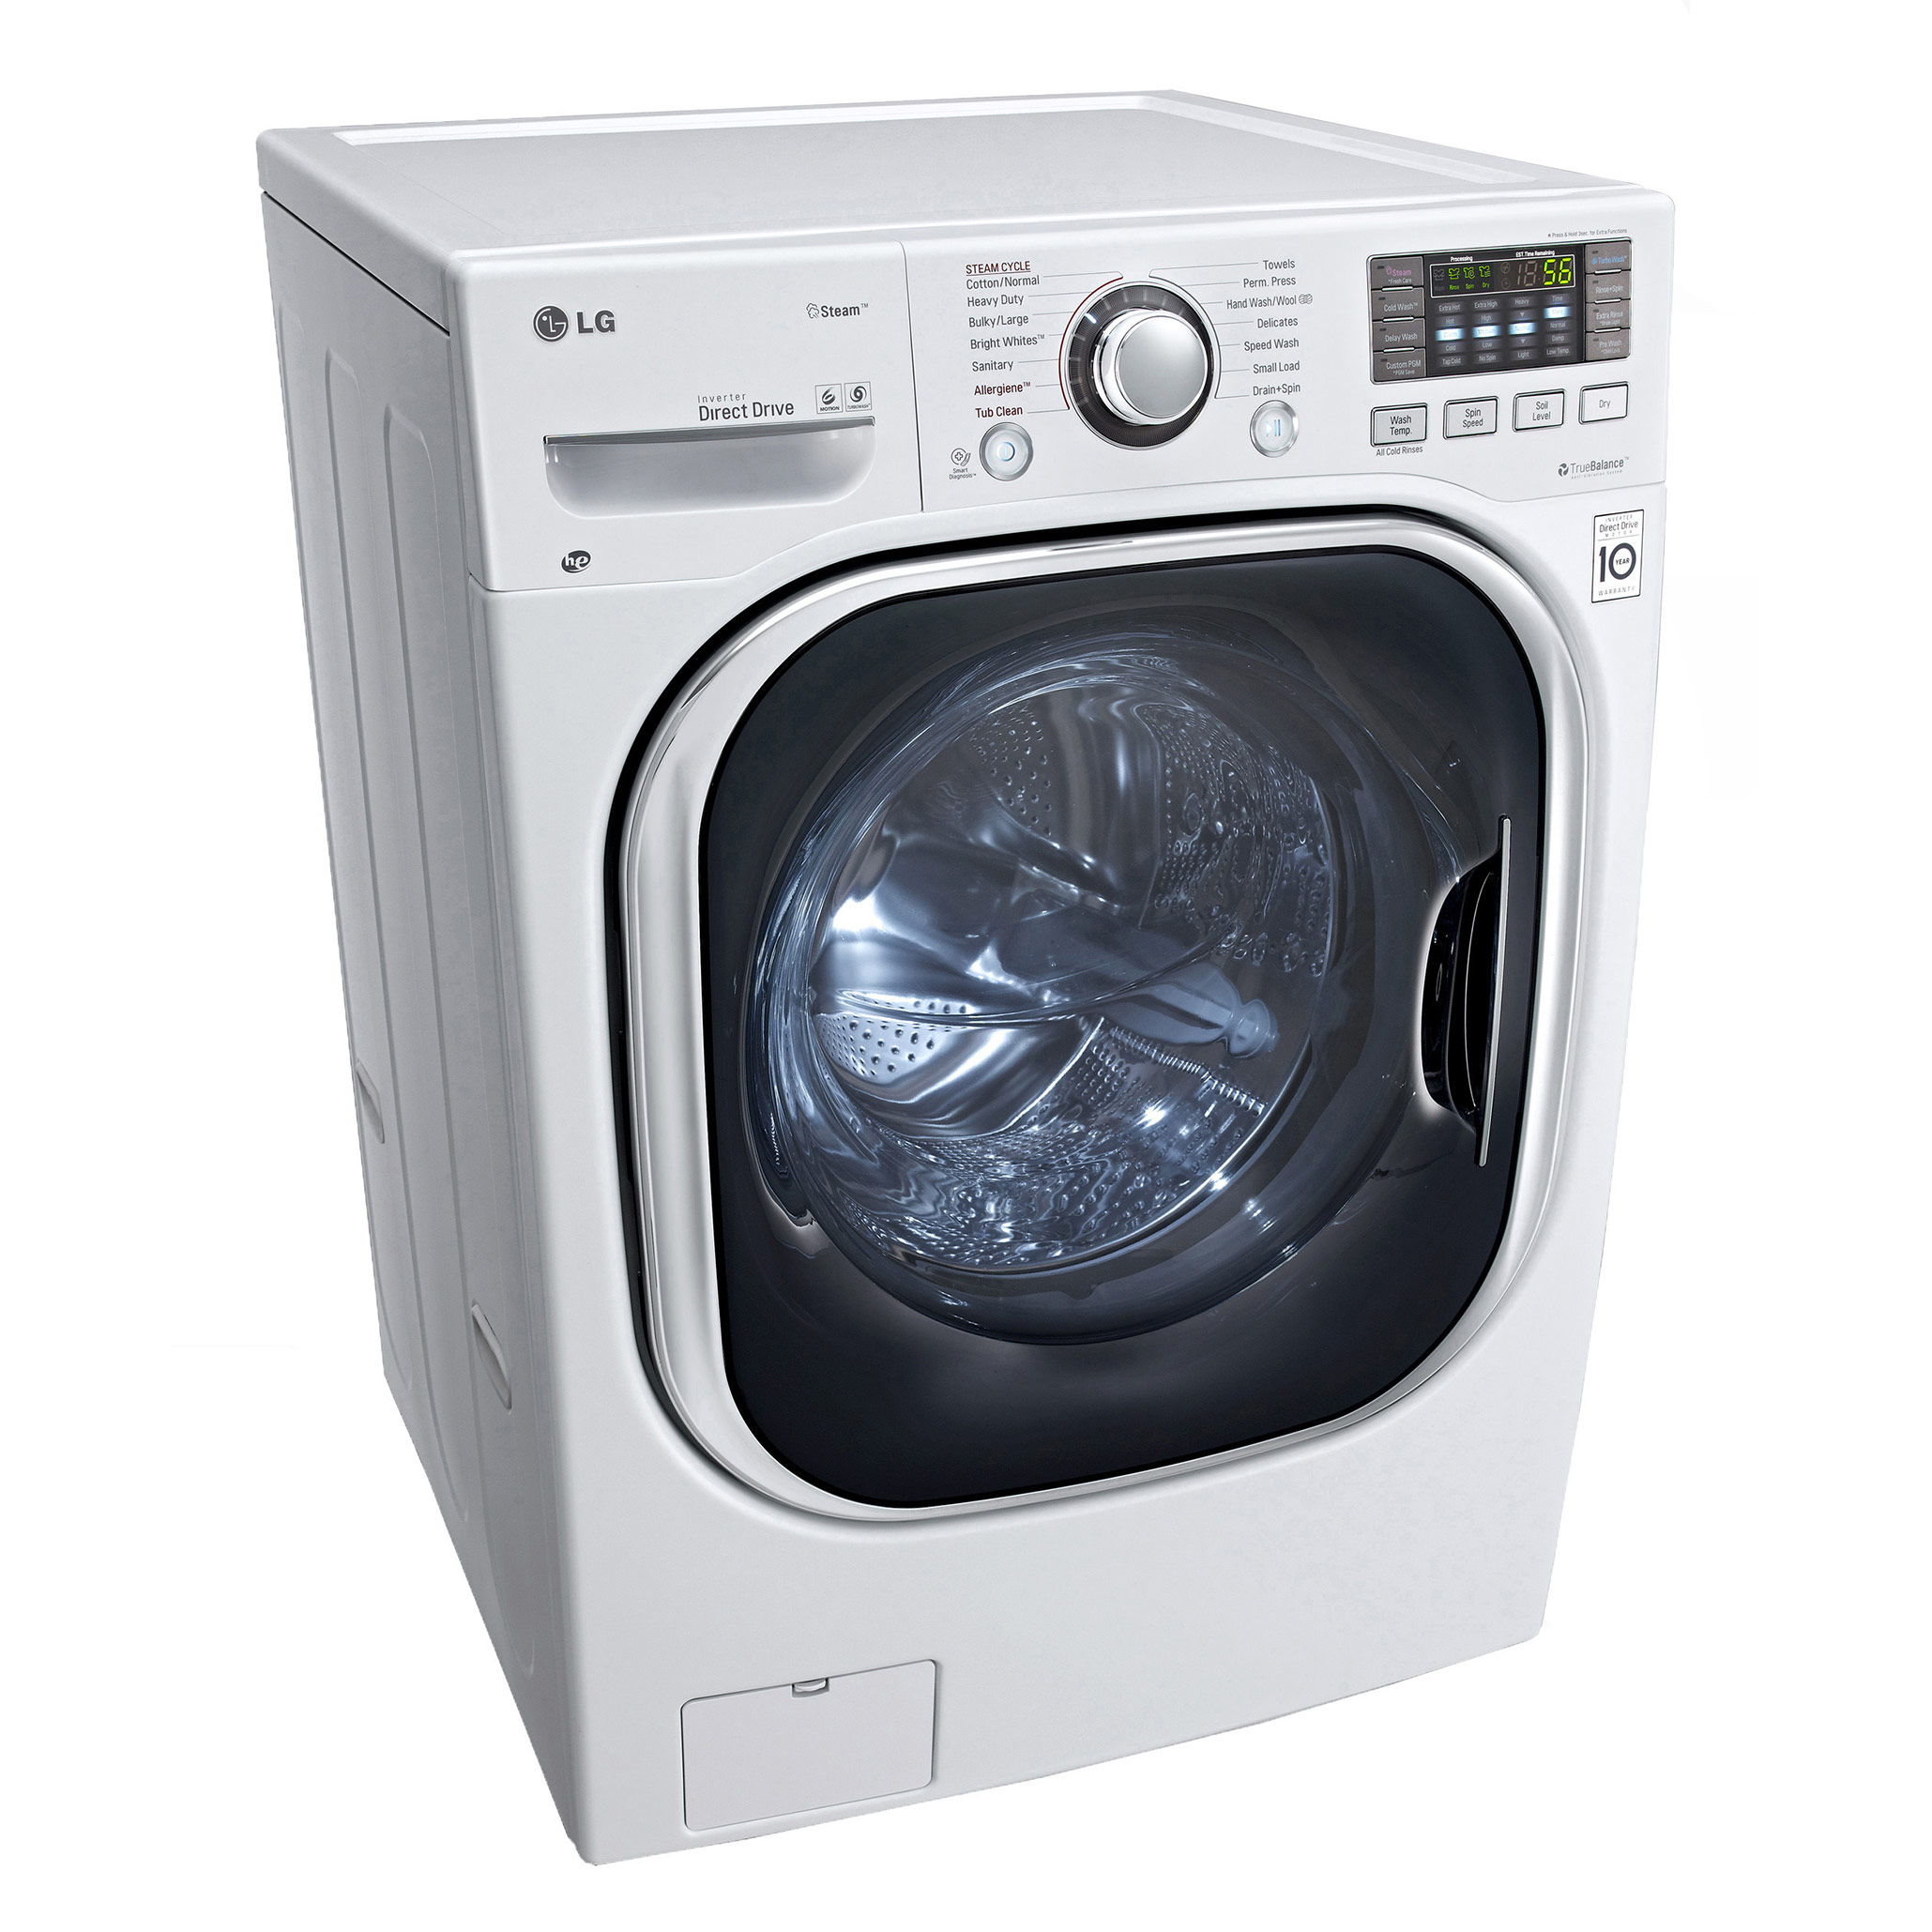 ... LG WM3997HWA U2013 27u201d Full Size Ventless Washer Dryer Combo ...